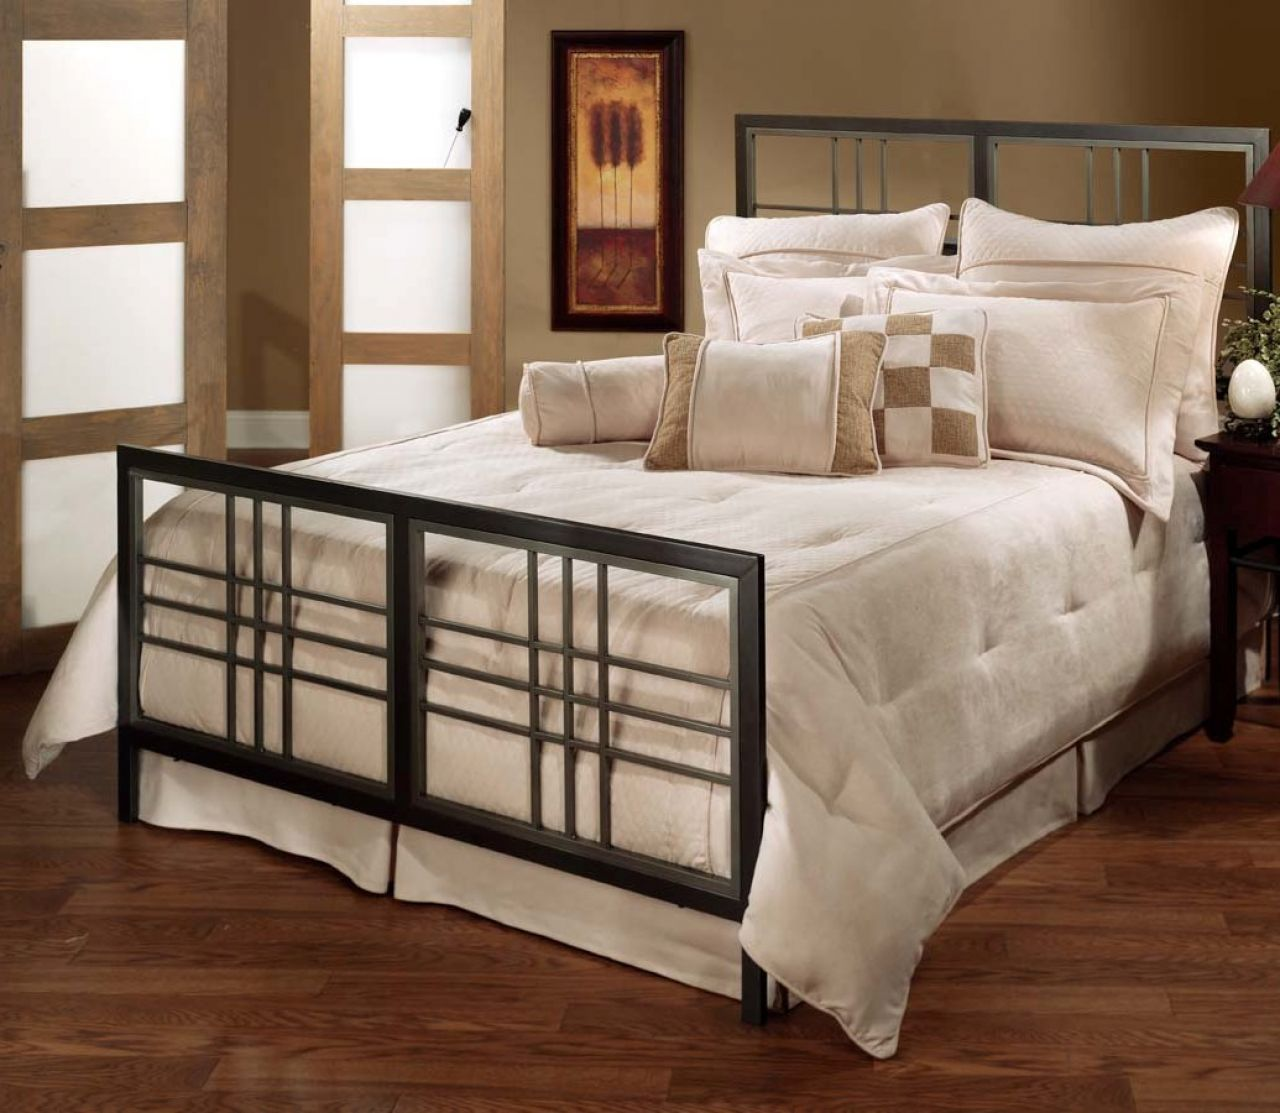 Restoration Hardware Bedroom Benches